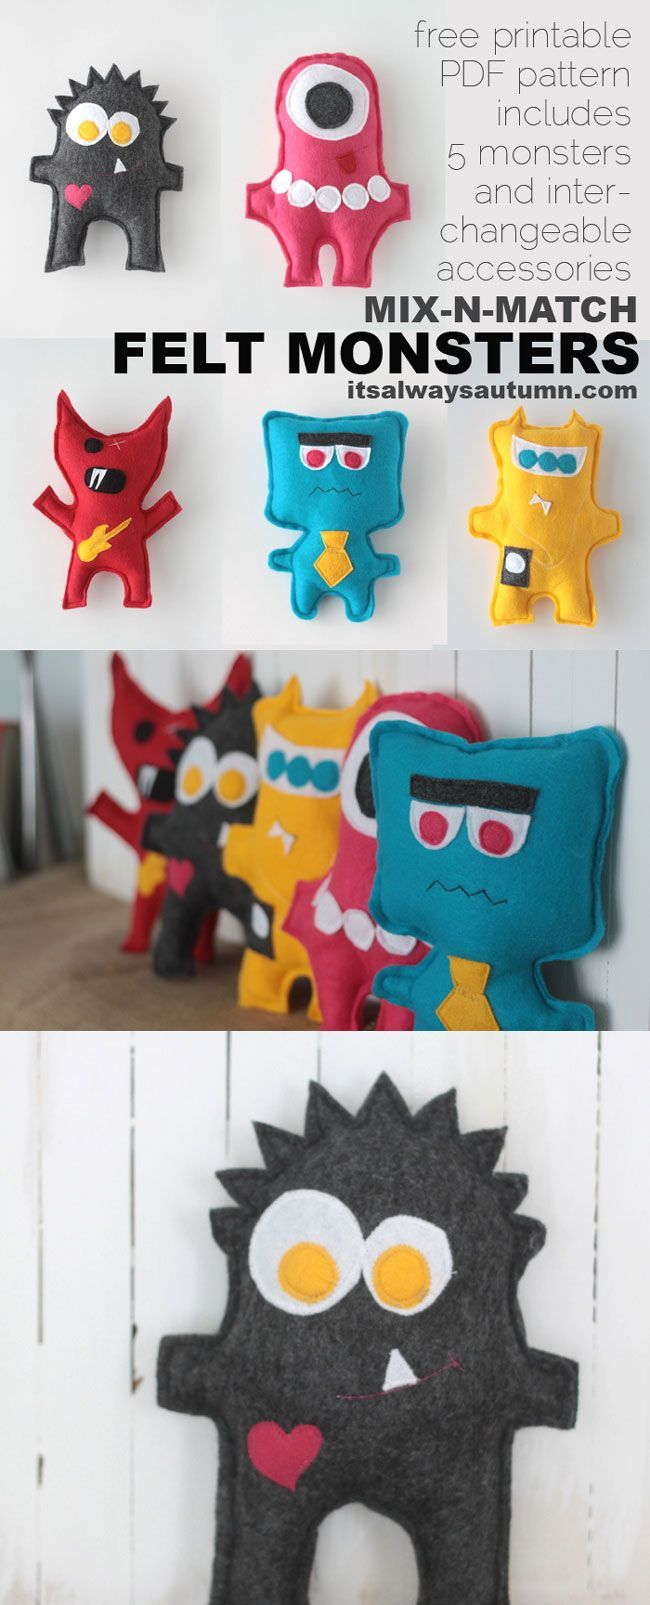 so cute! I'm making one of these for my son for Christmas. free mix-n-match sewing pattern for 5 different monsters.